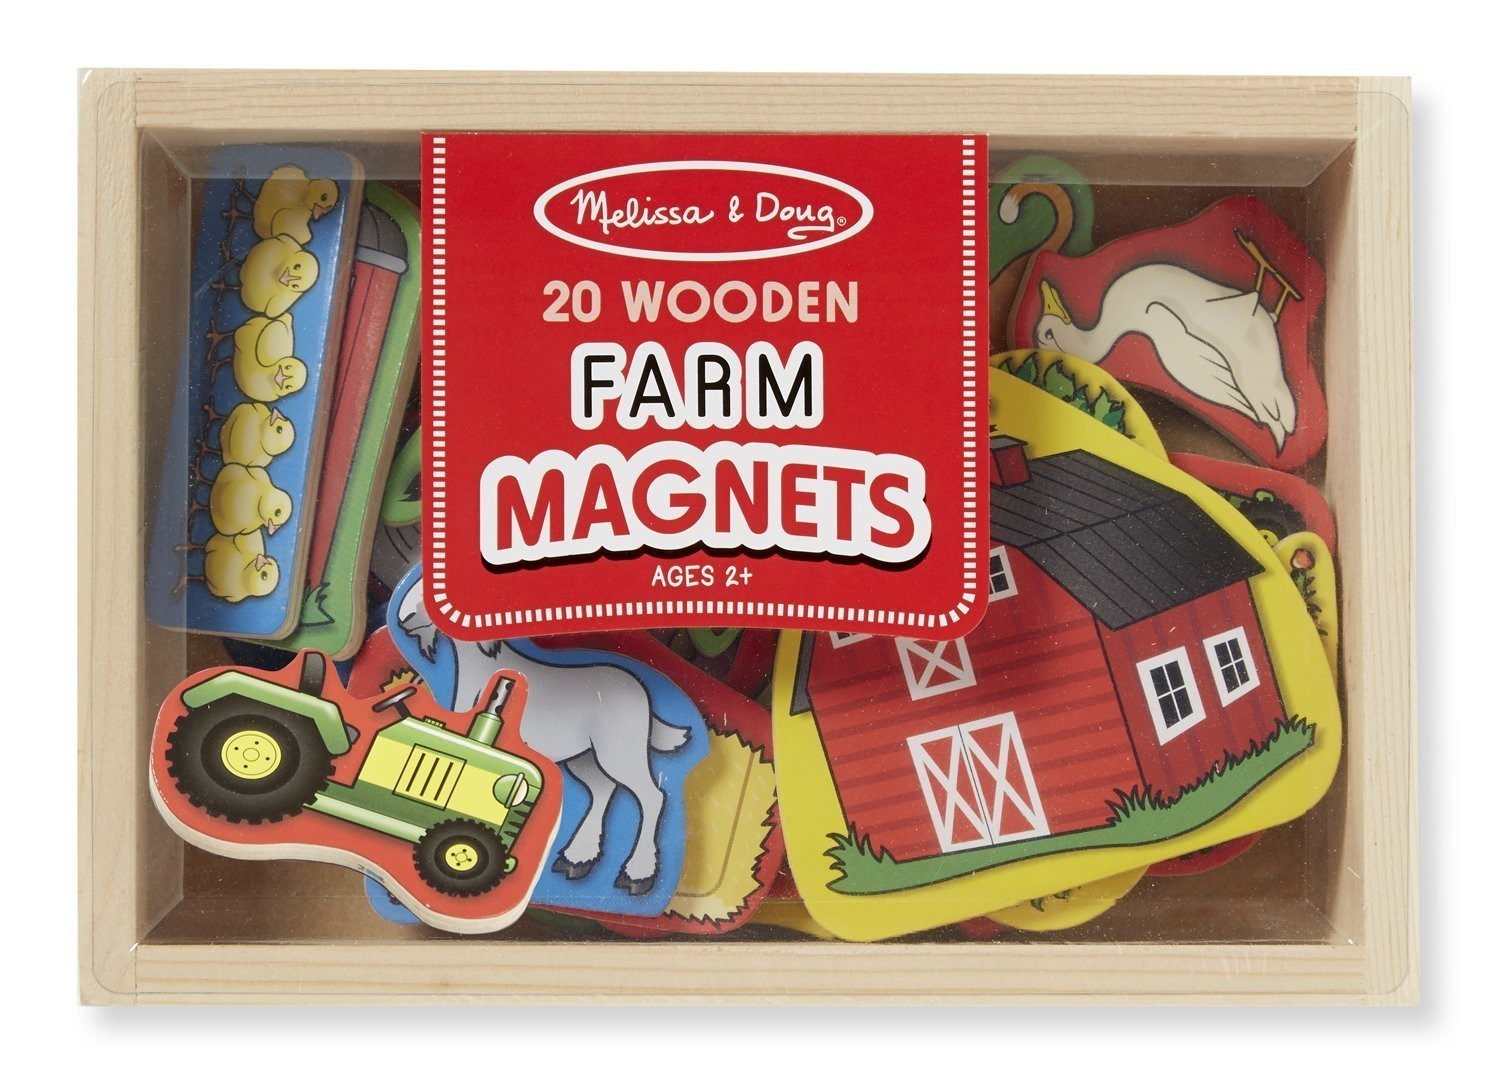 Ferma cu magneti melissa and doug